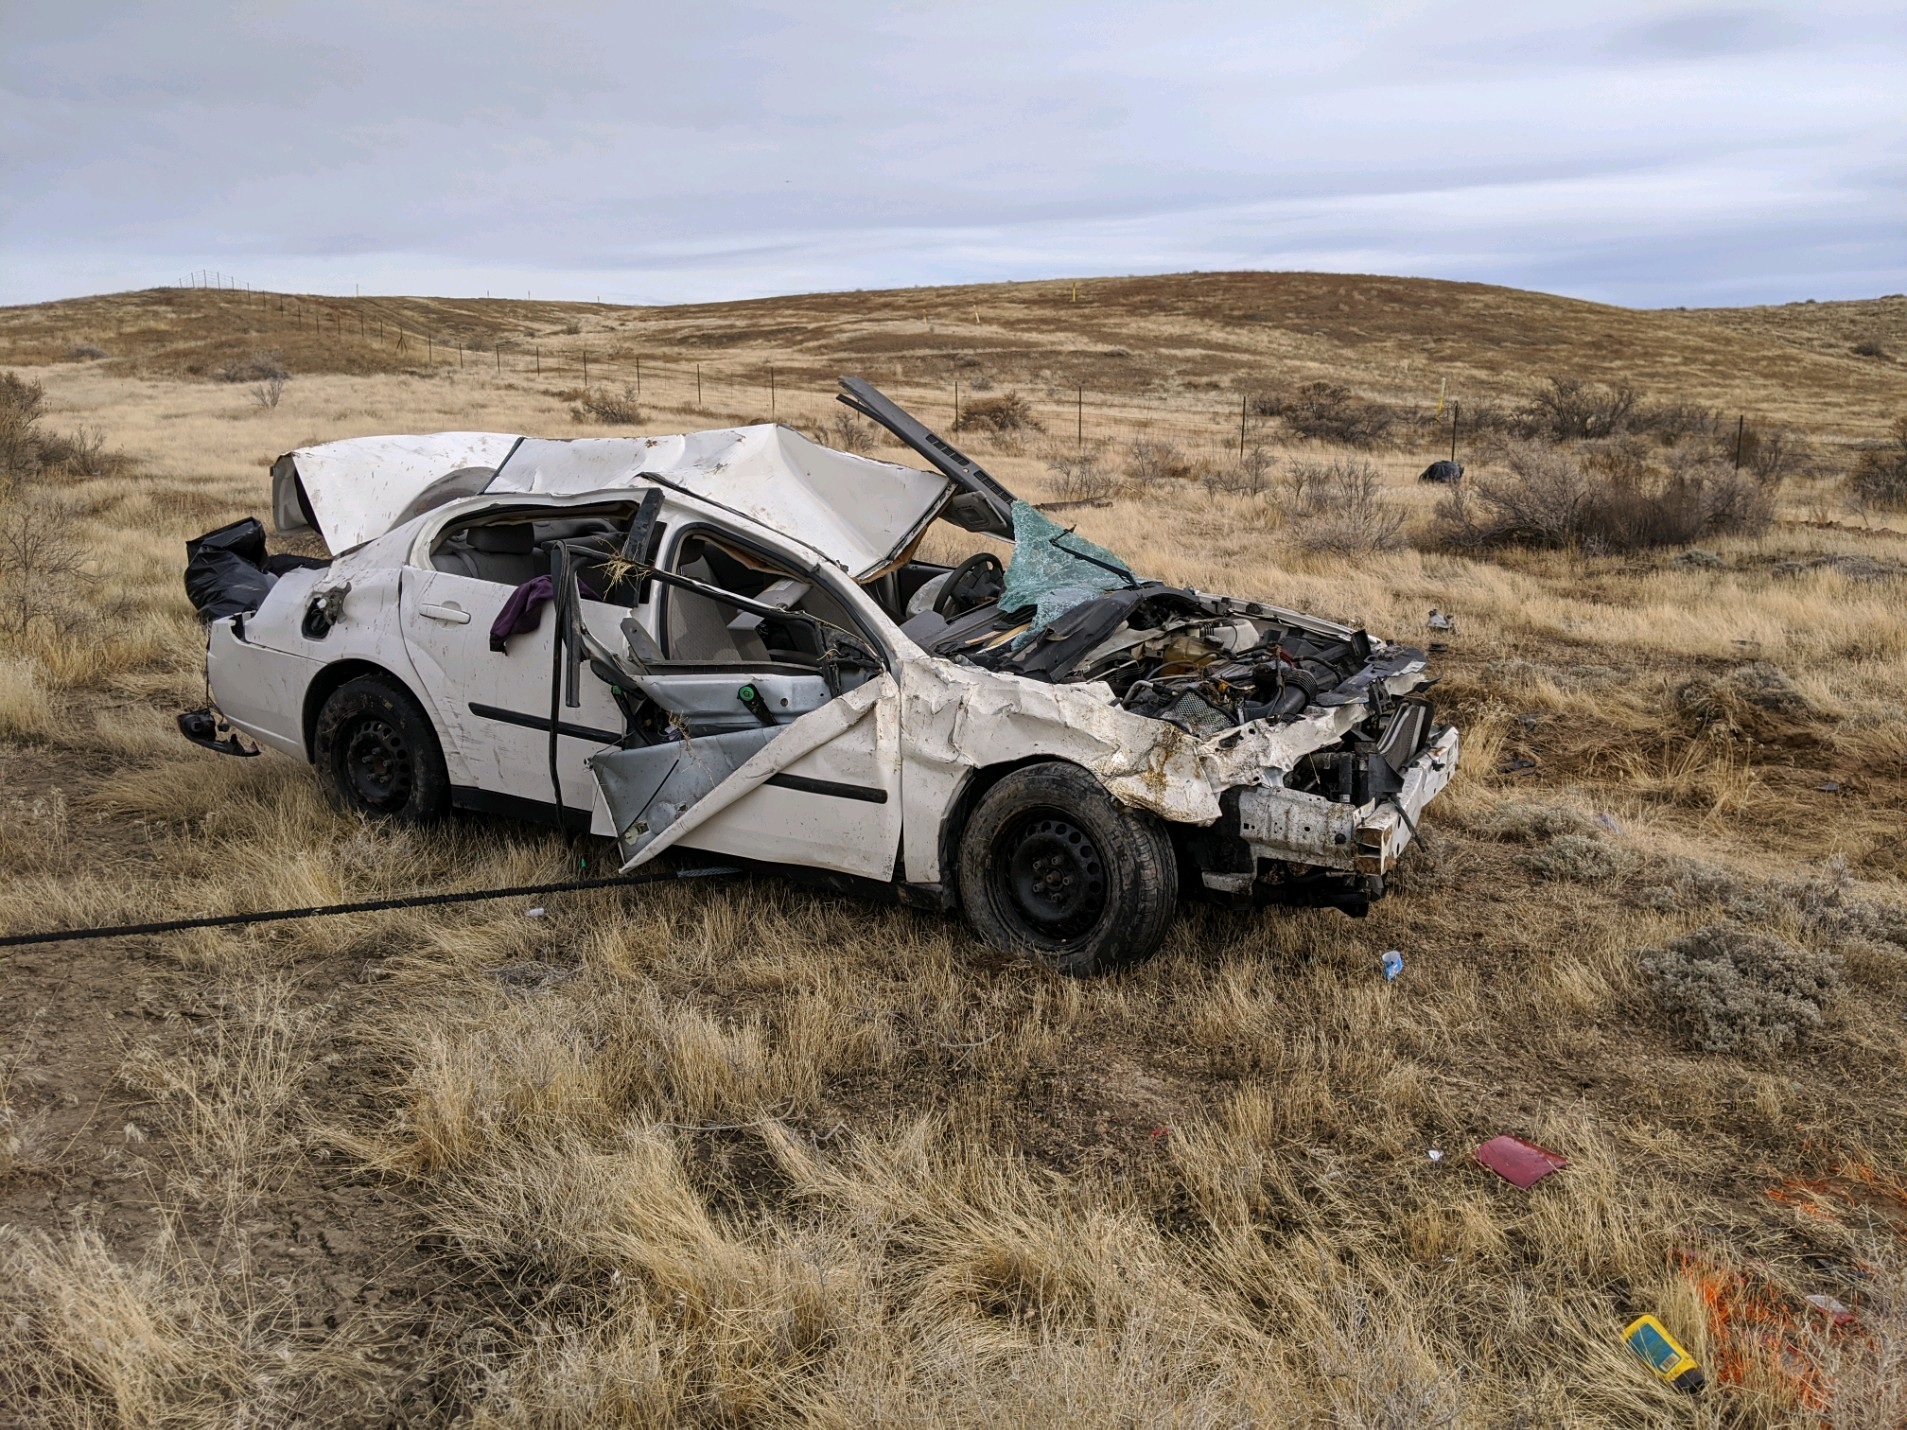 One man was killed and another injured in a crash on I-70 about seven miles from the Utah-Colorado state line on Wedneday, Dec. 11, 2019.